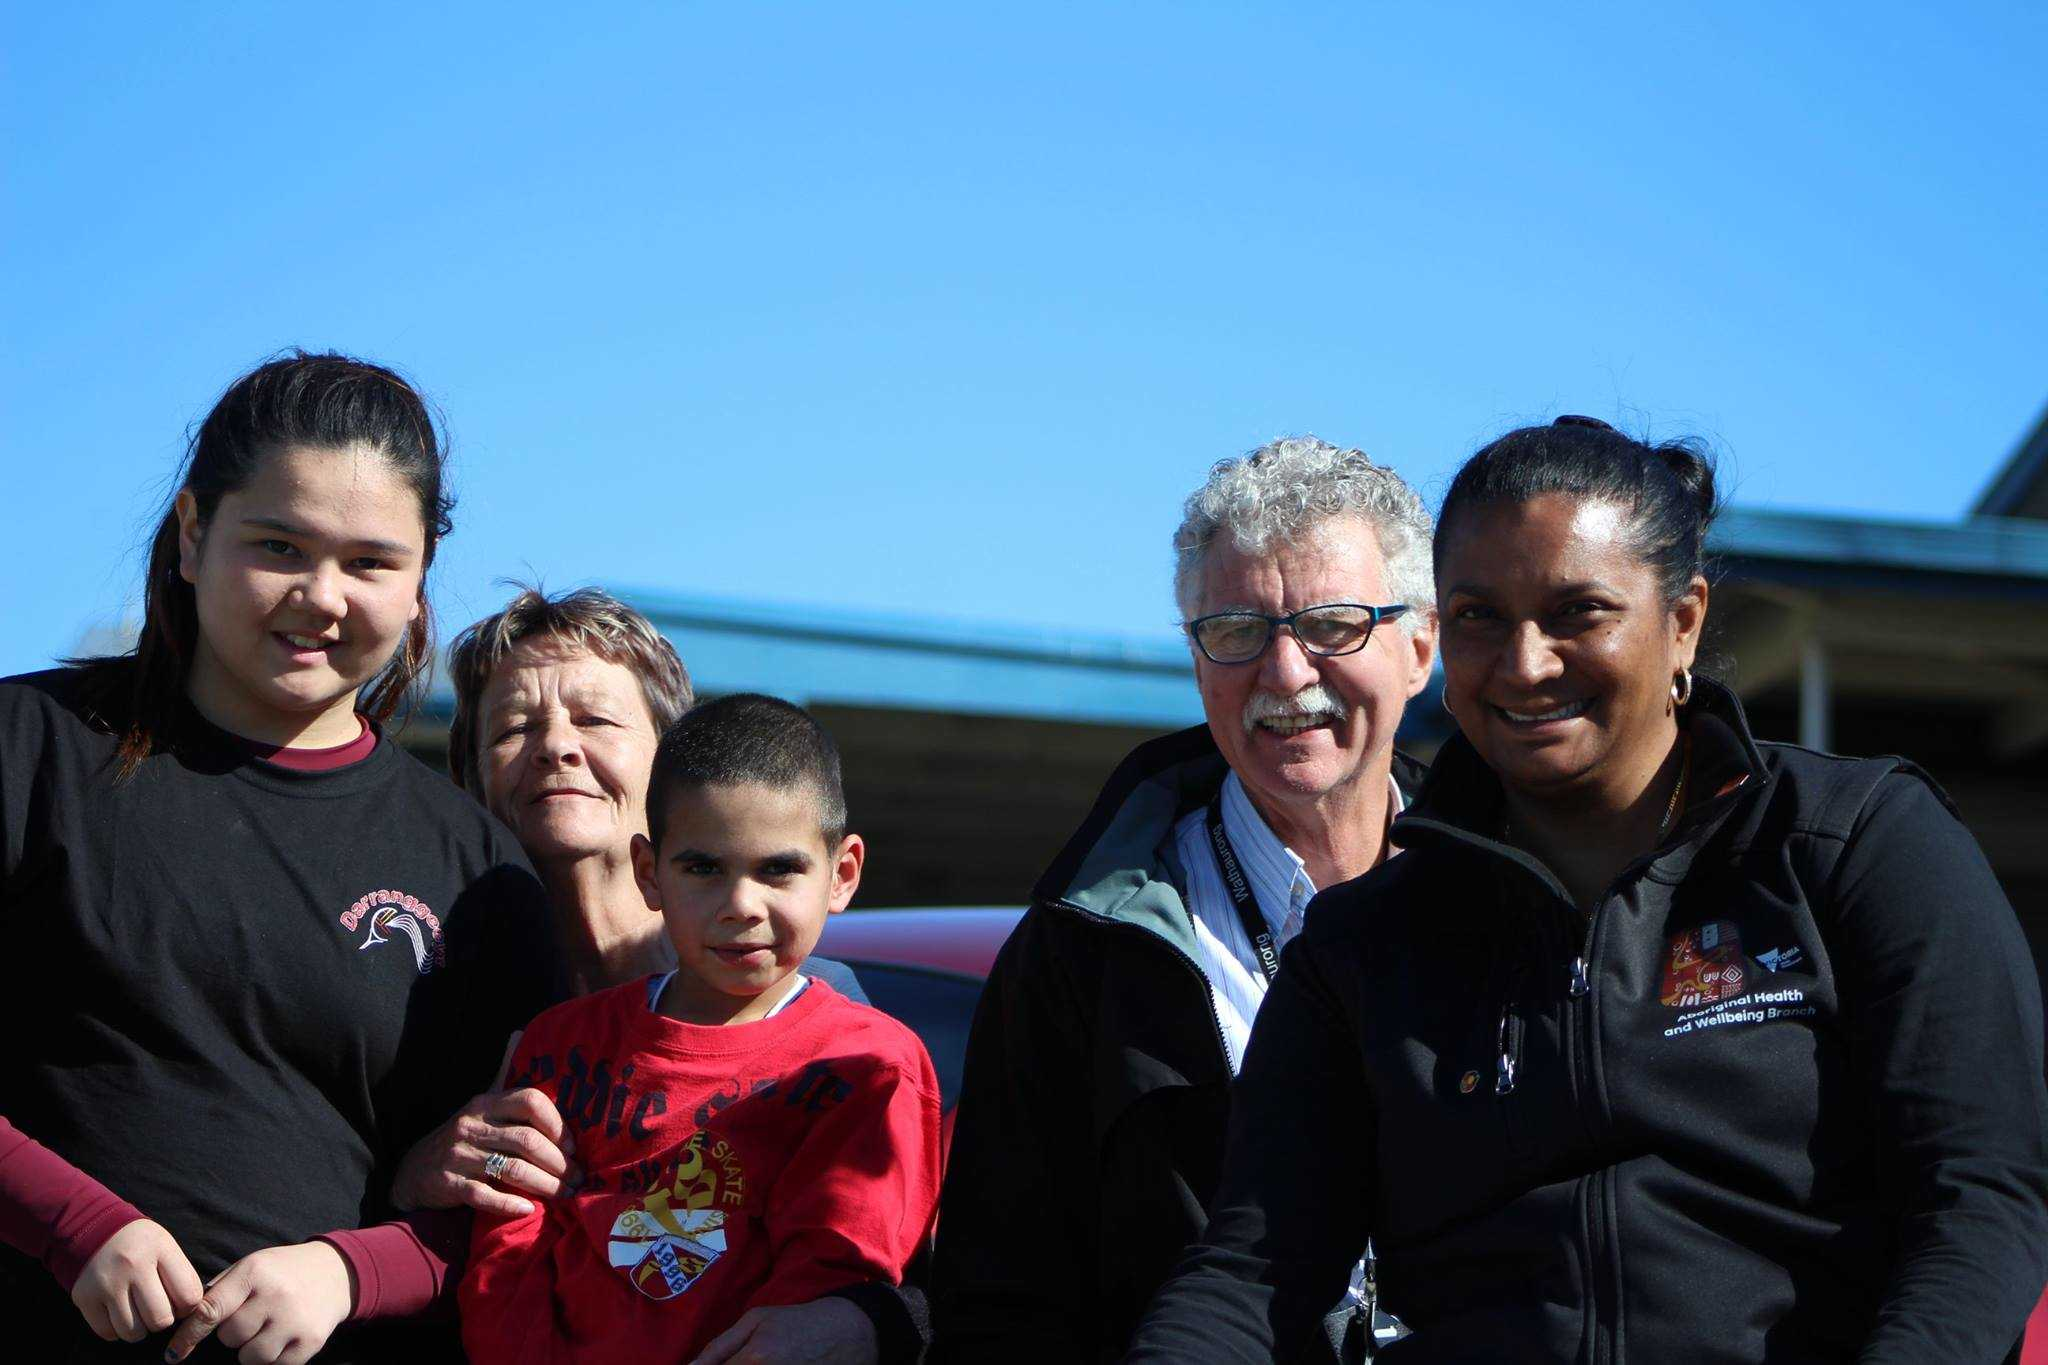 <p>This year's VACSAL Junior Football and Netball Carnival was held in Geelong for the first time in a couple of decades. Hundreds of people from mobs all over Victoria congregated at Belmont Football Club for the Footy and Kardinia Park for the Netball. We were stoked to see Nova Peris [&hellip;]</p>